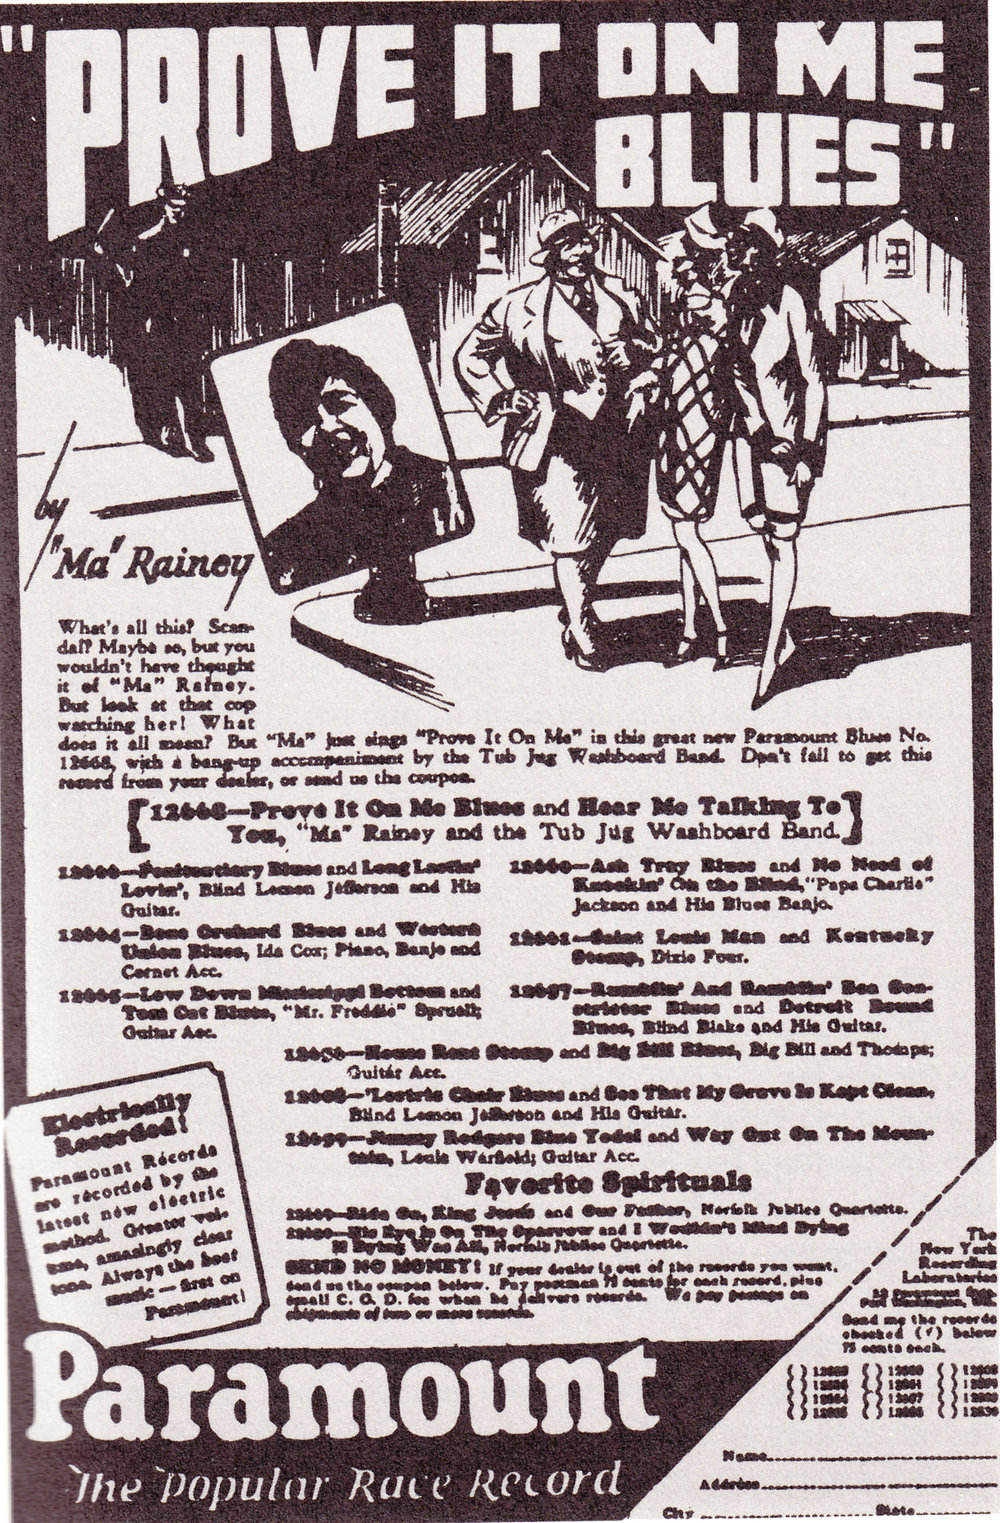 "The infamous ""Prove it on me BLues"" ad featuring Ma Rainey flirting while a cop looks on, suspicious. ( source )"